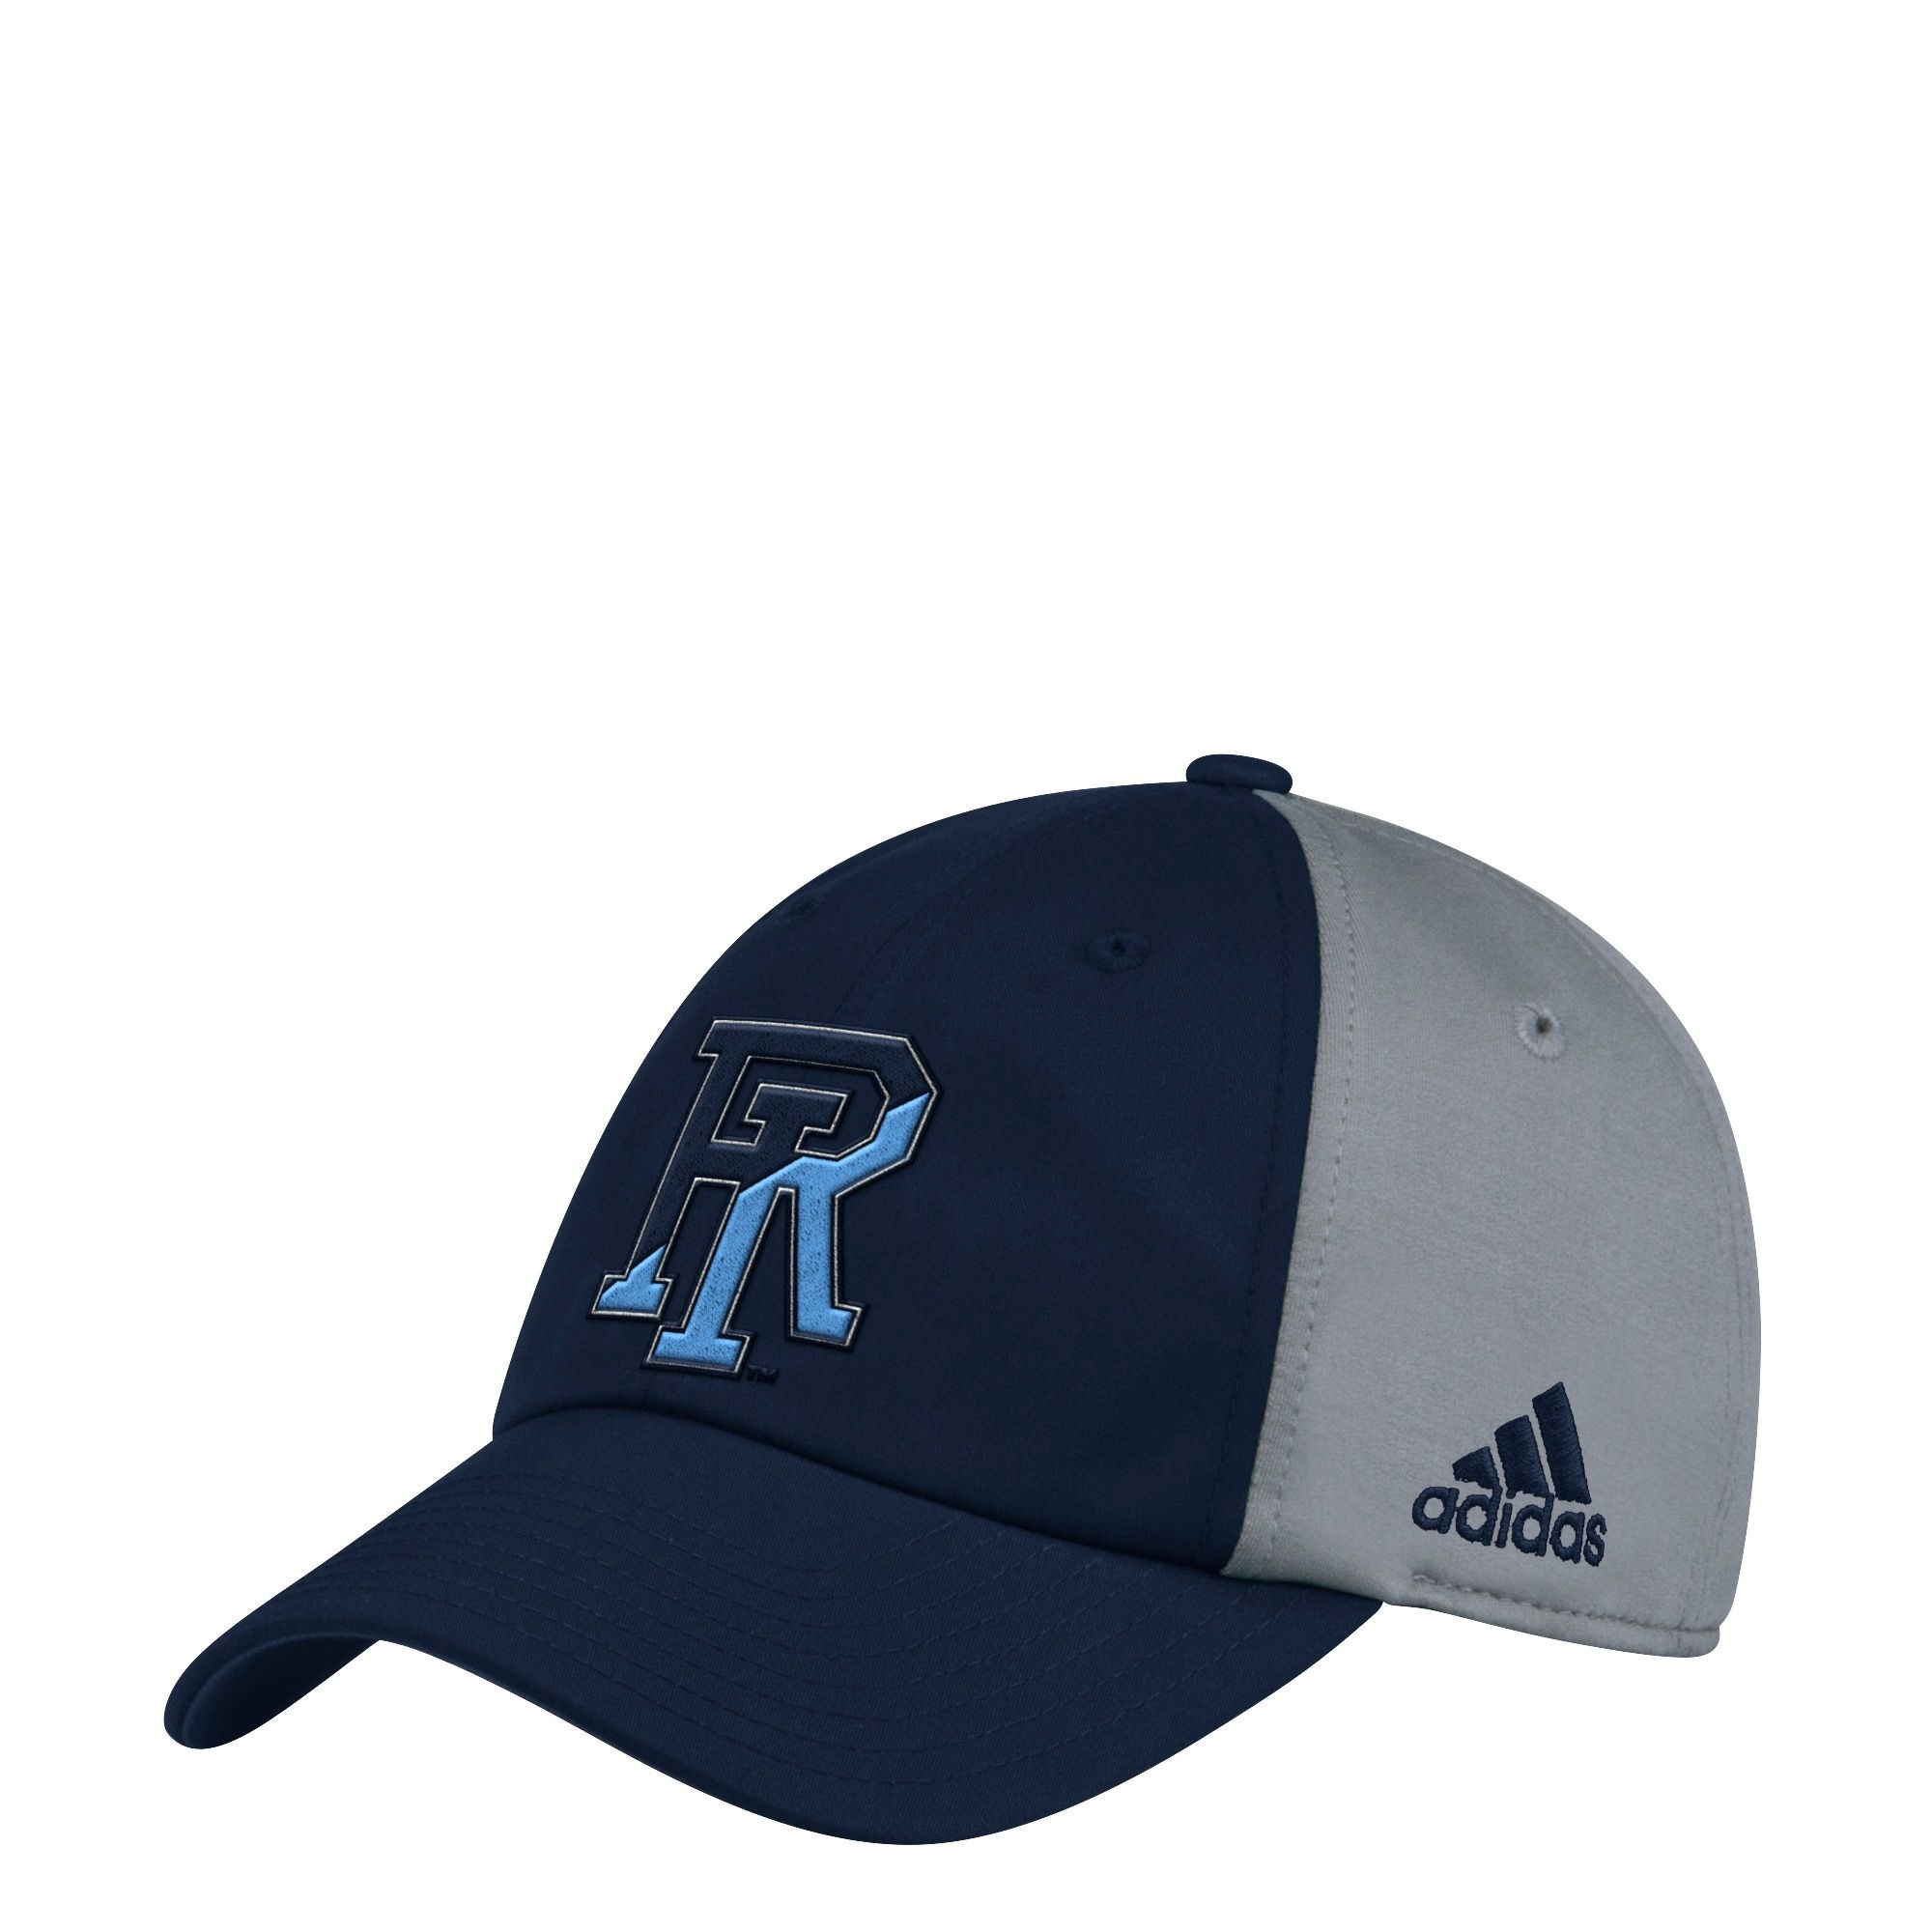 abc72910b81 Adidas Adjustable Slouch Cap